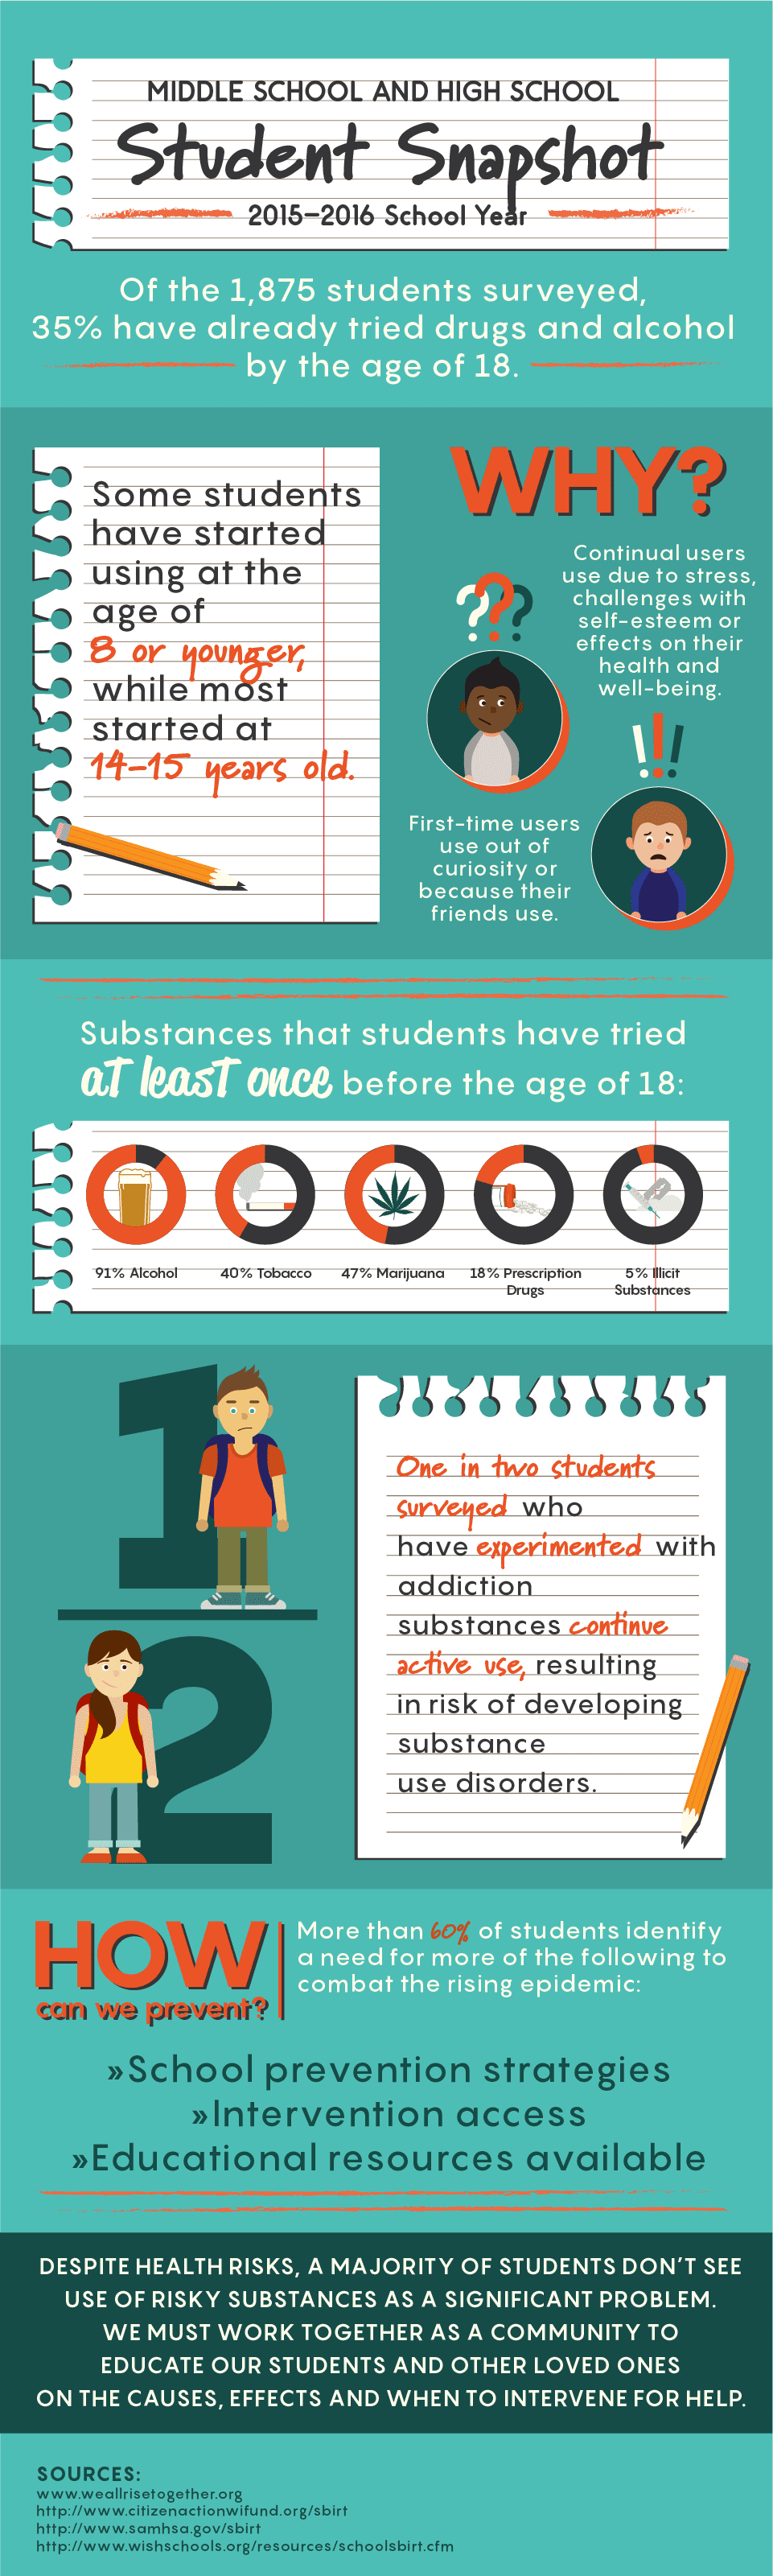 middle-school-high-school-student-substance-use-and-abuse